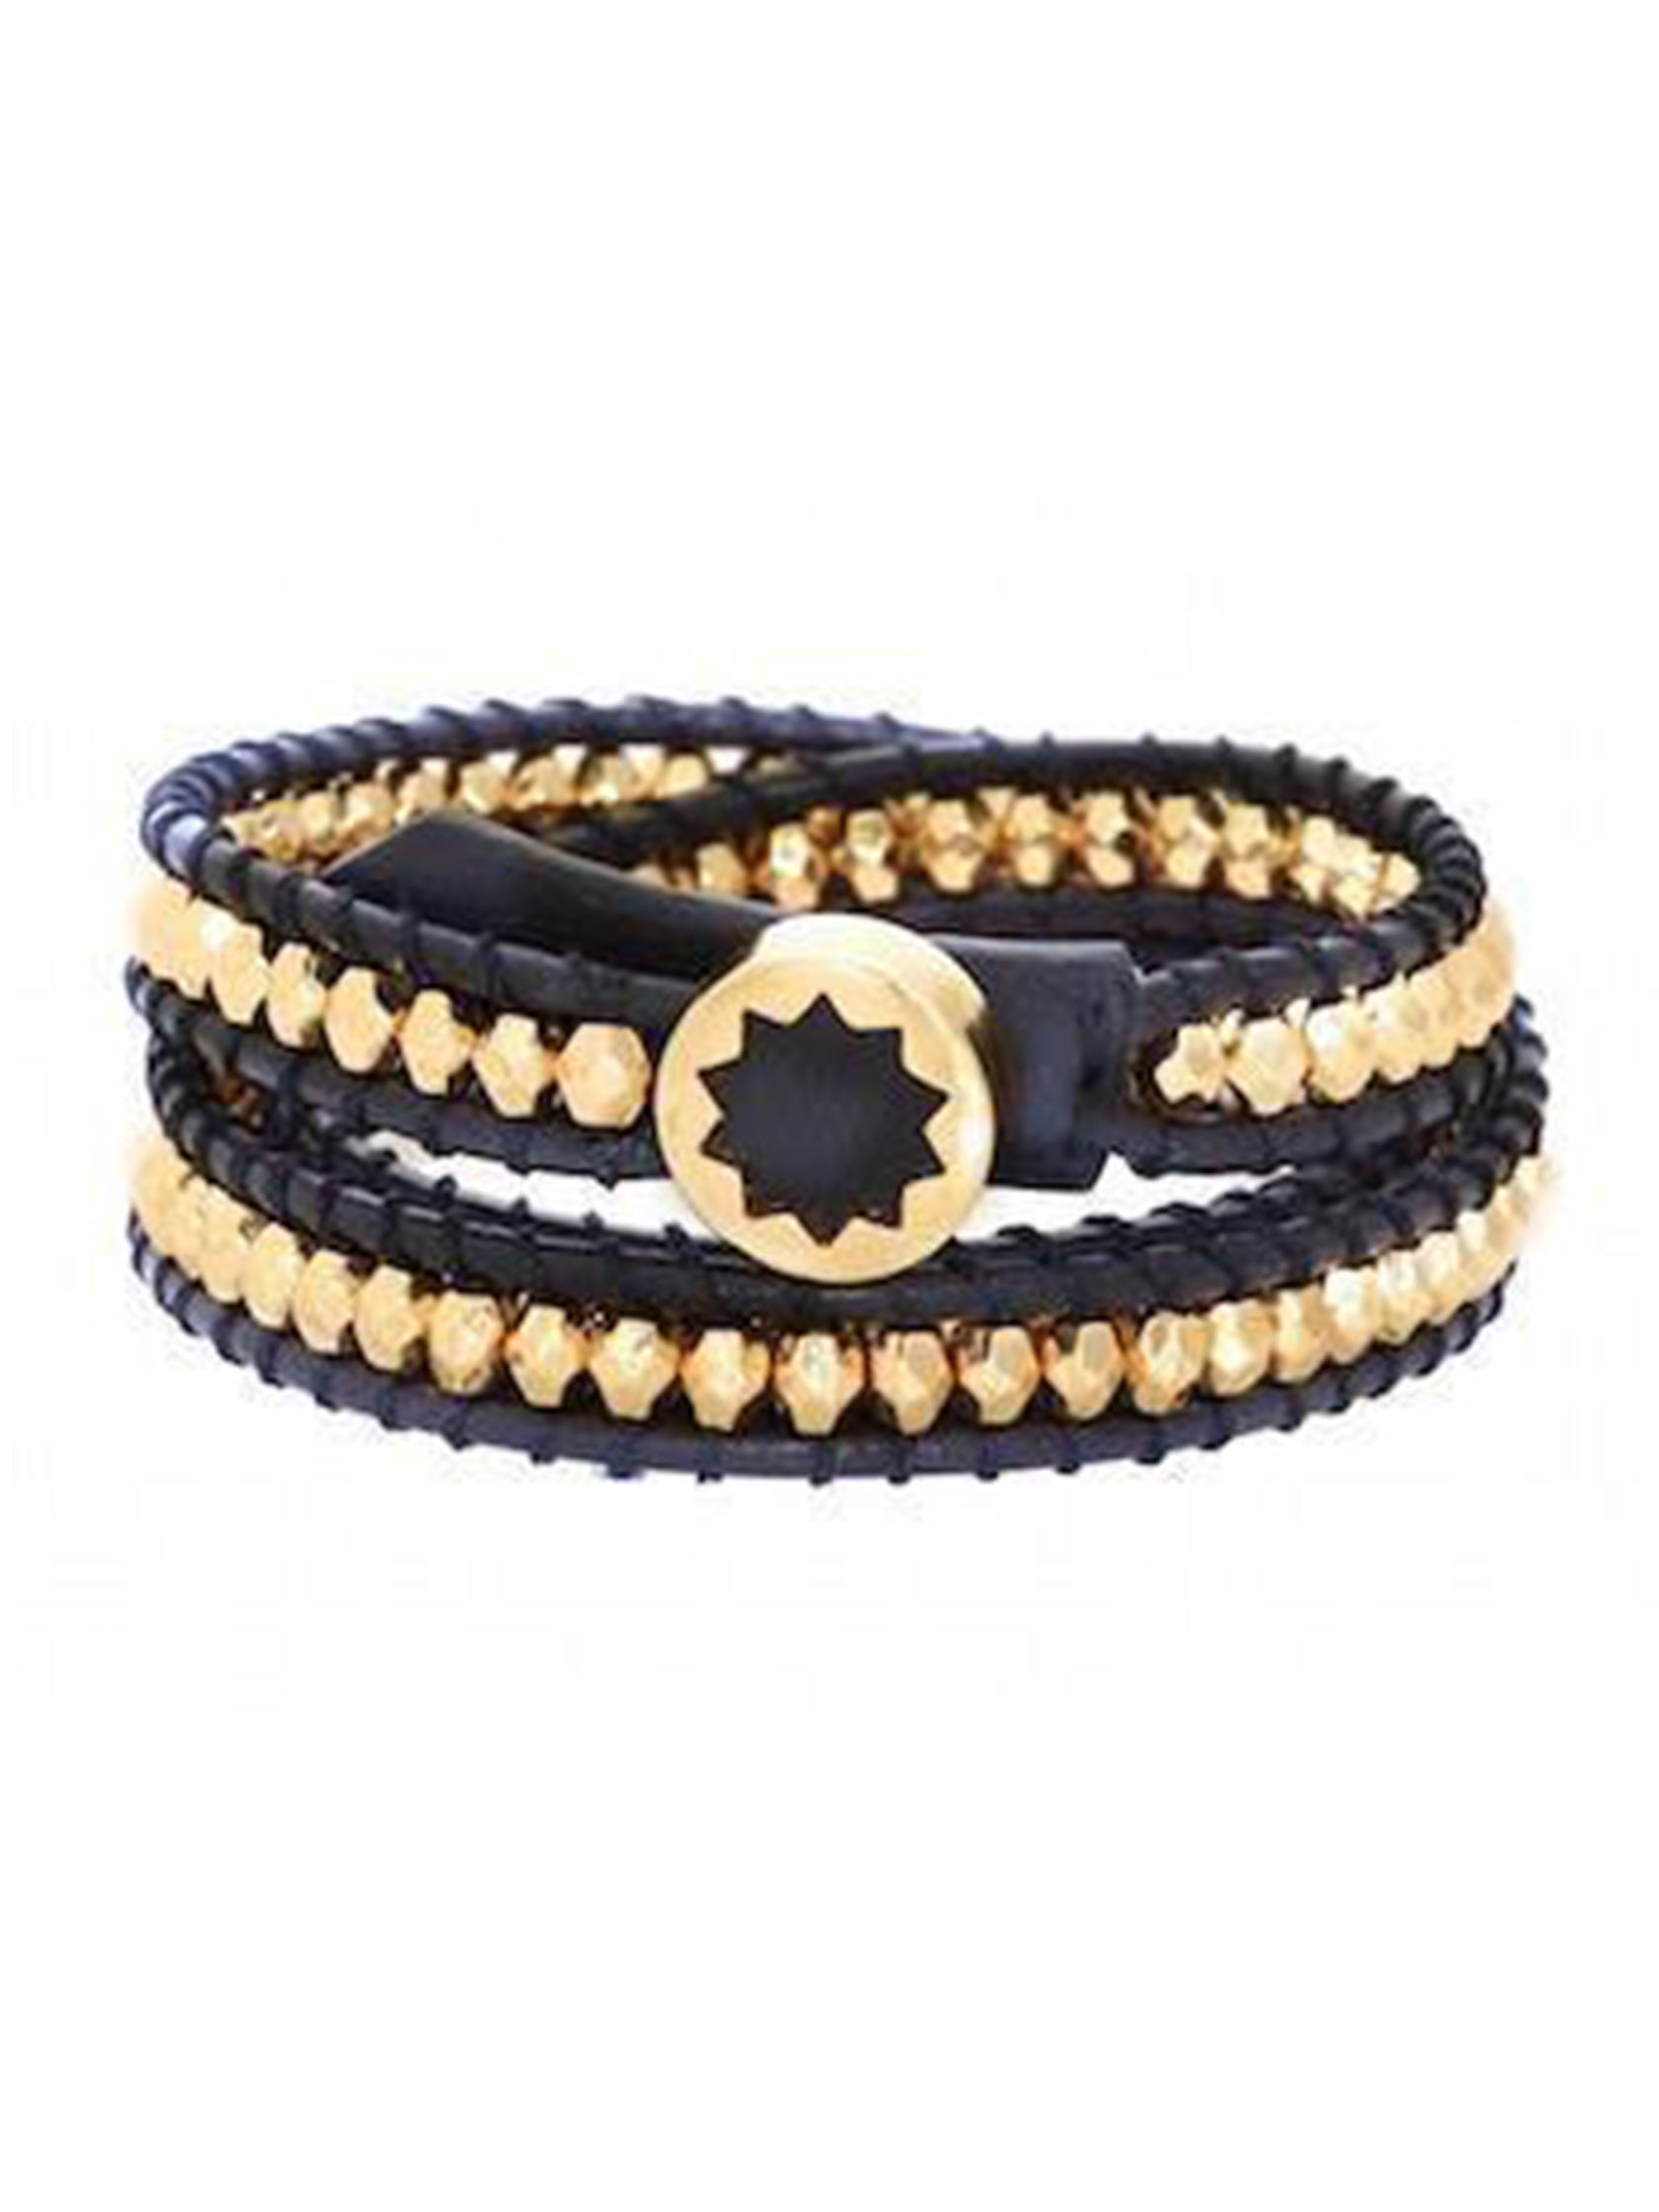 Women outfit in a bracelet rental from House of Harlow 1960 called Karma Wrap Bracelet